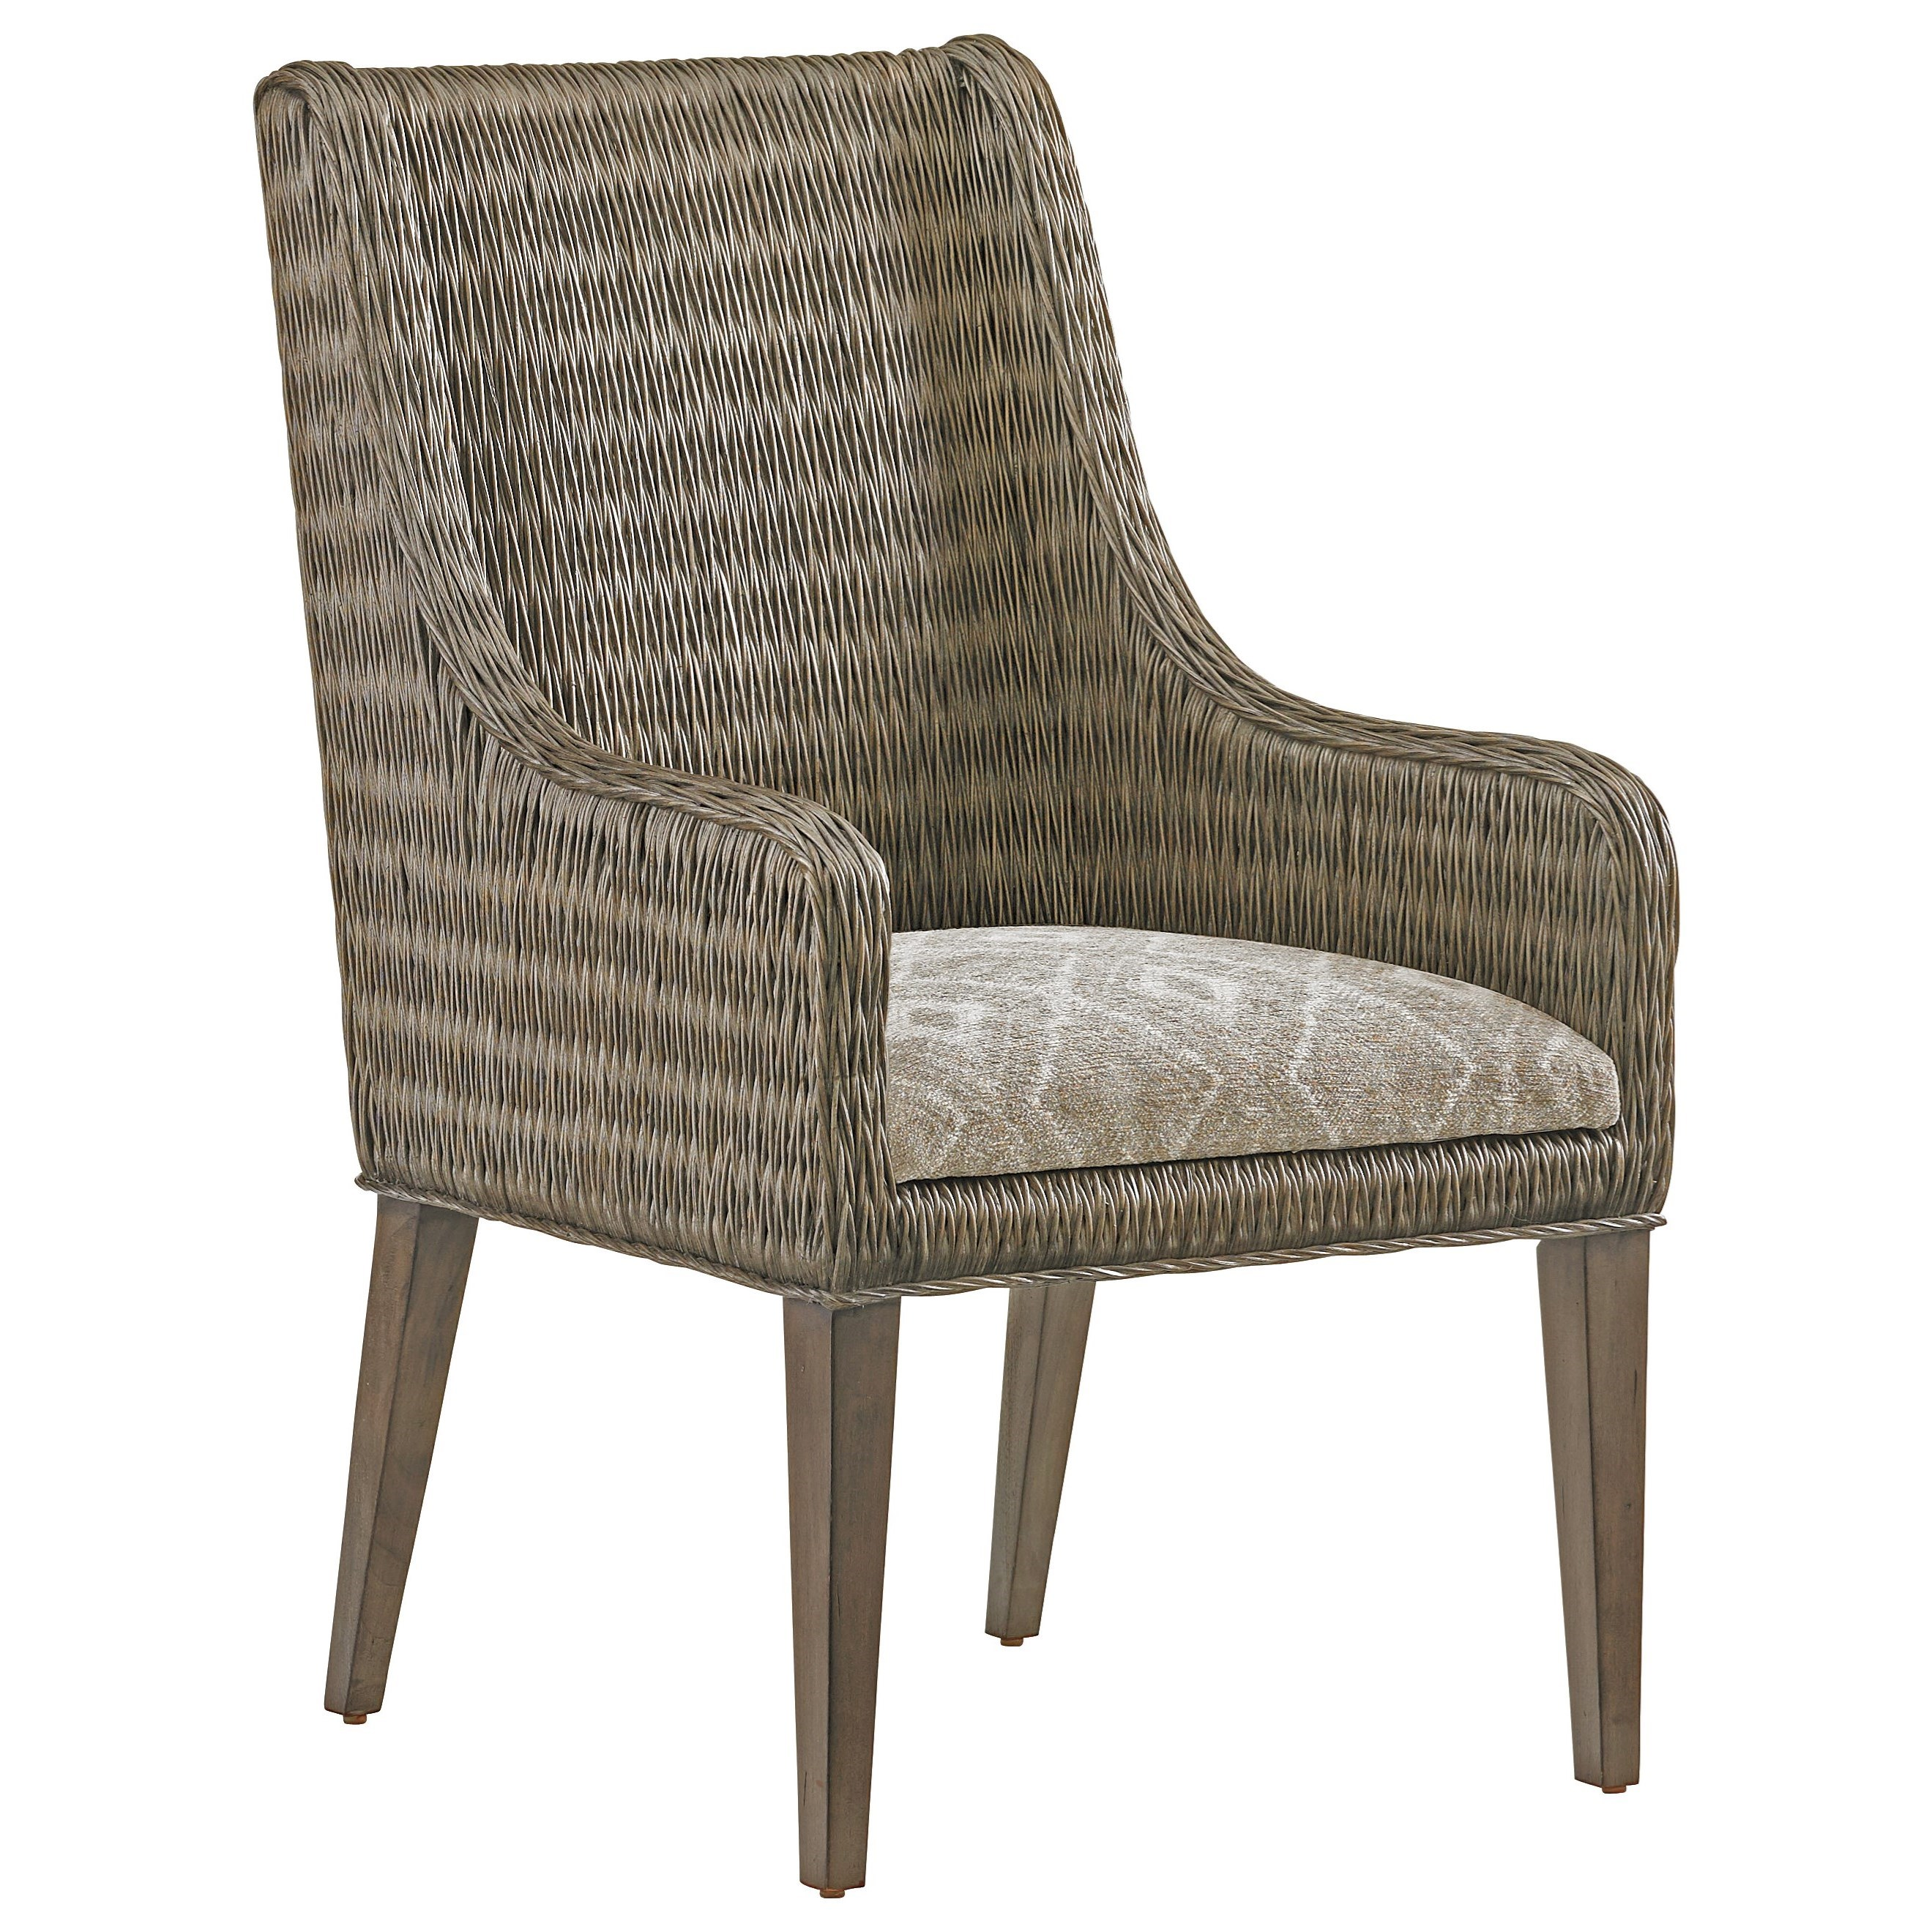 Tommy Bahama Home Cypress Point 562 883 Brandon Woven Rattan Arm Chair With Custom Fabric